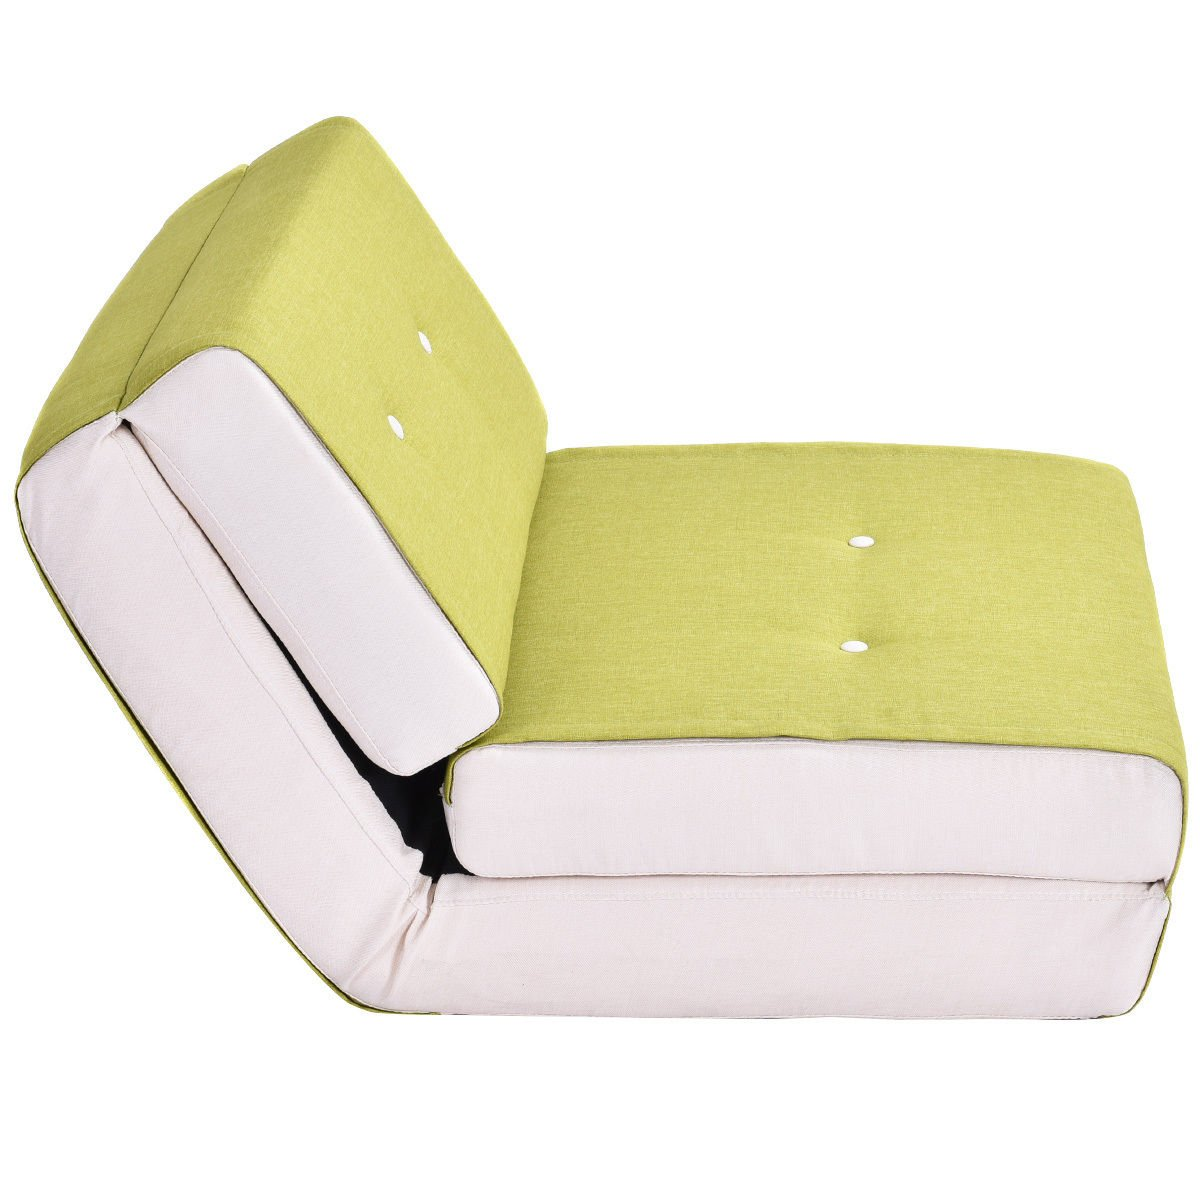 Fold Down Chair Flip Out Lounger Convertible Sleeper Bed Couch Game Dorm Green by Tumsun (Image #3)